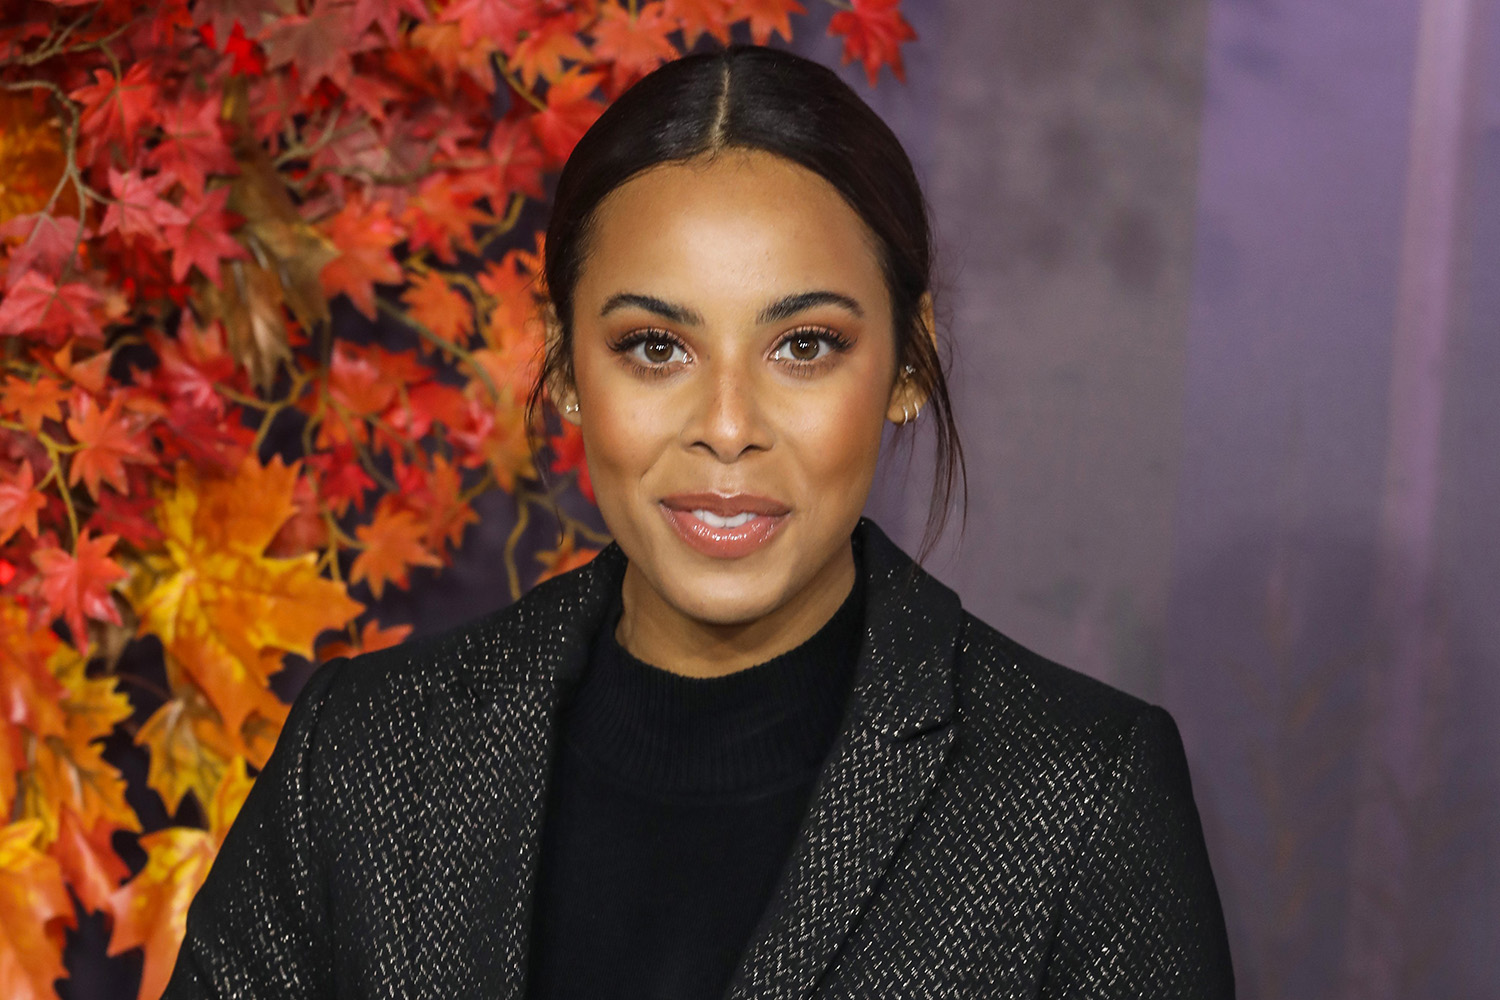 Rochelle Humes reveals her boobs are 'bigger than her belly' as she shares pregnancy update